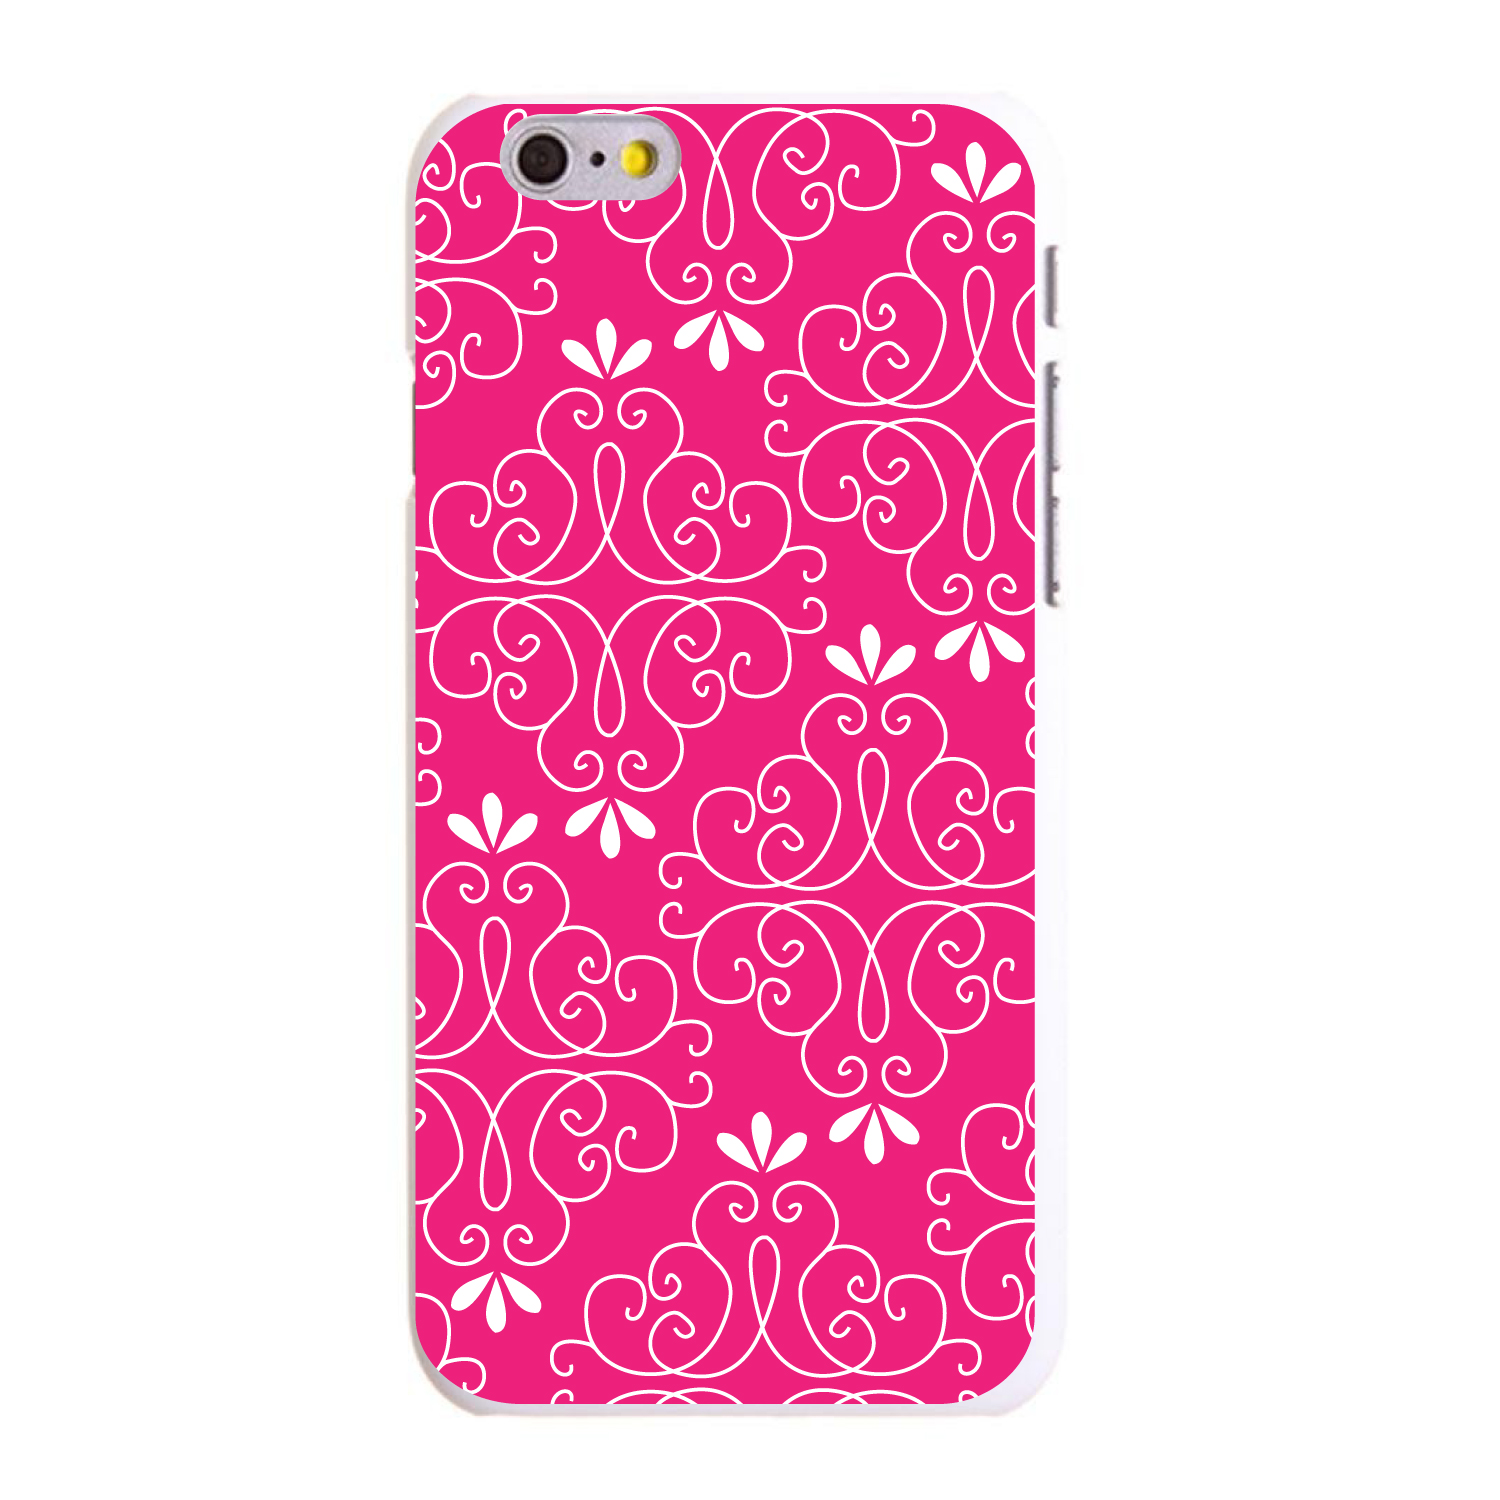 """CUSTOM White Hard Plastic Snap-On Case for Apple iPhone 6 PLUS / 6S PLUS (5.5"""" Screen) - Neon Pink White Floral"""